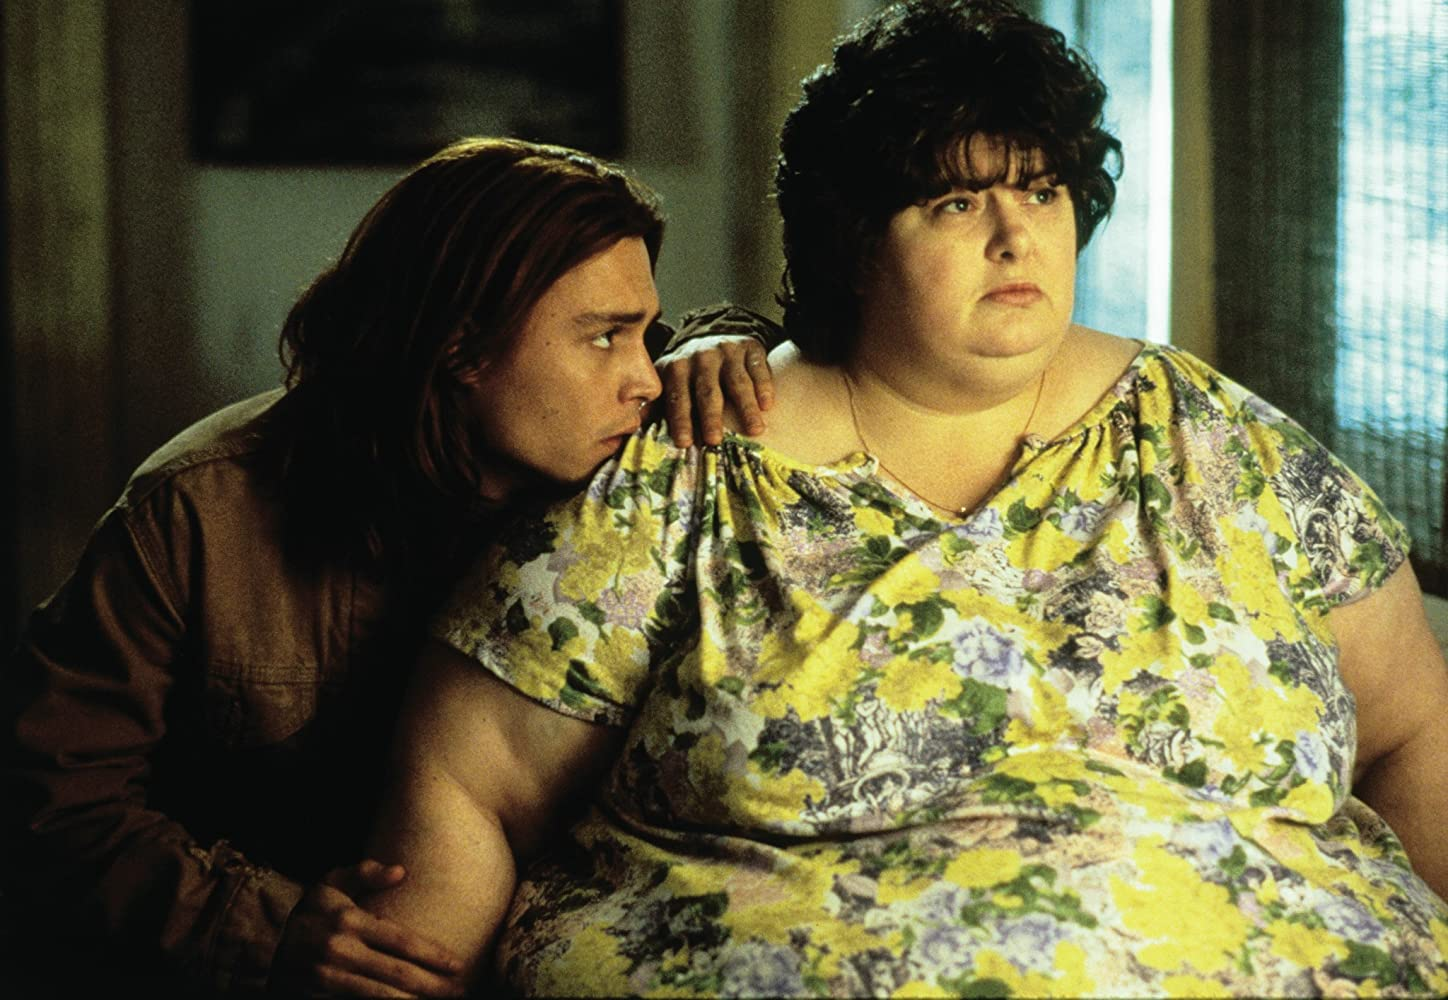 Risultati immagini per what eating gilbert grape